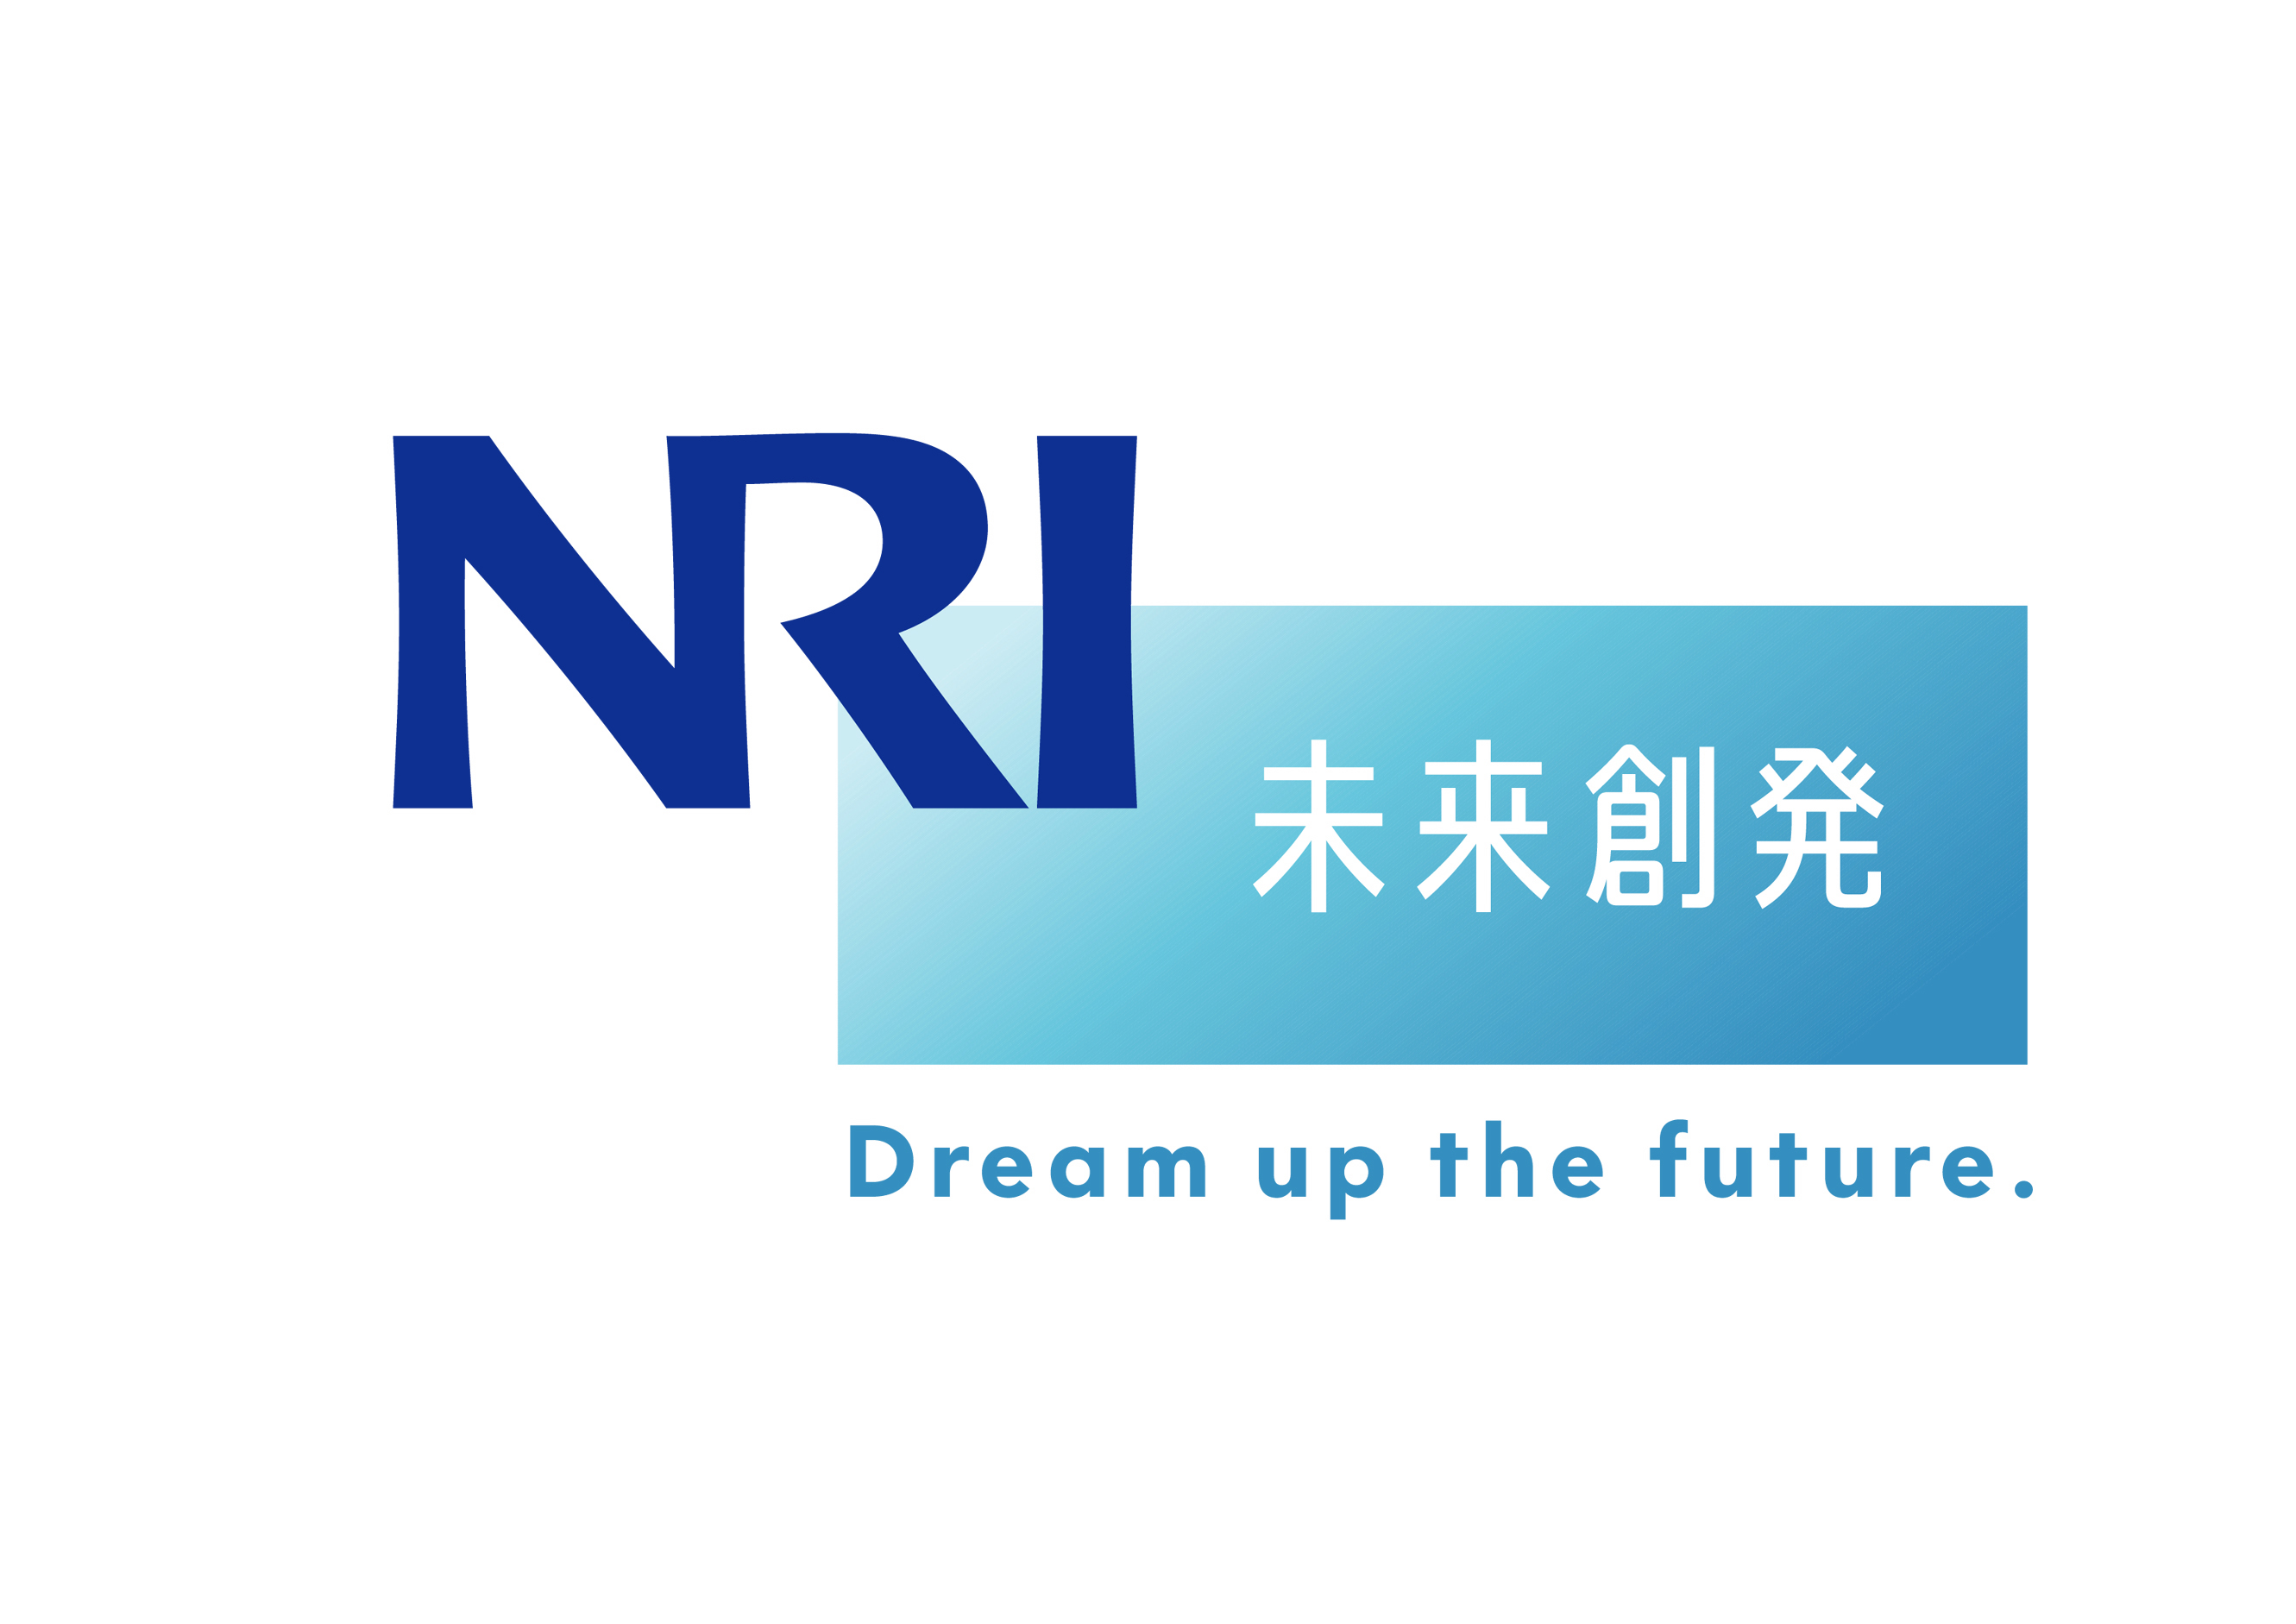 NRI Launches Study Investigating Future of Blockchain Technology for Securities